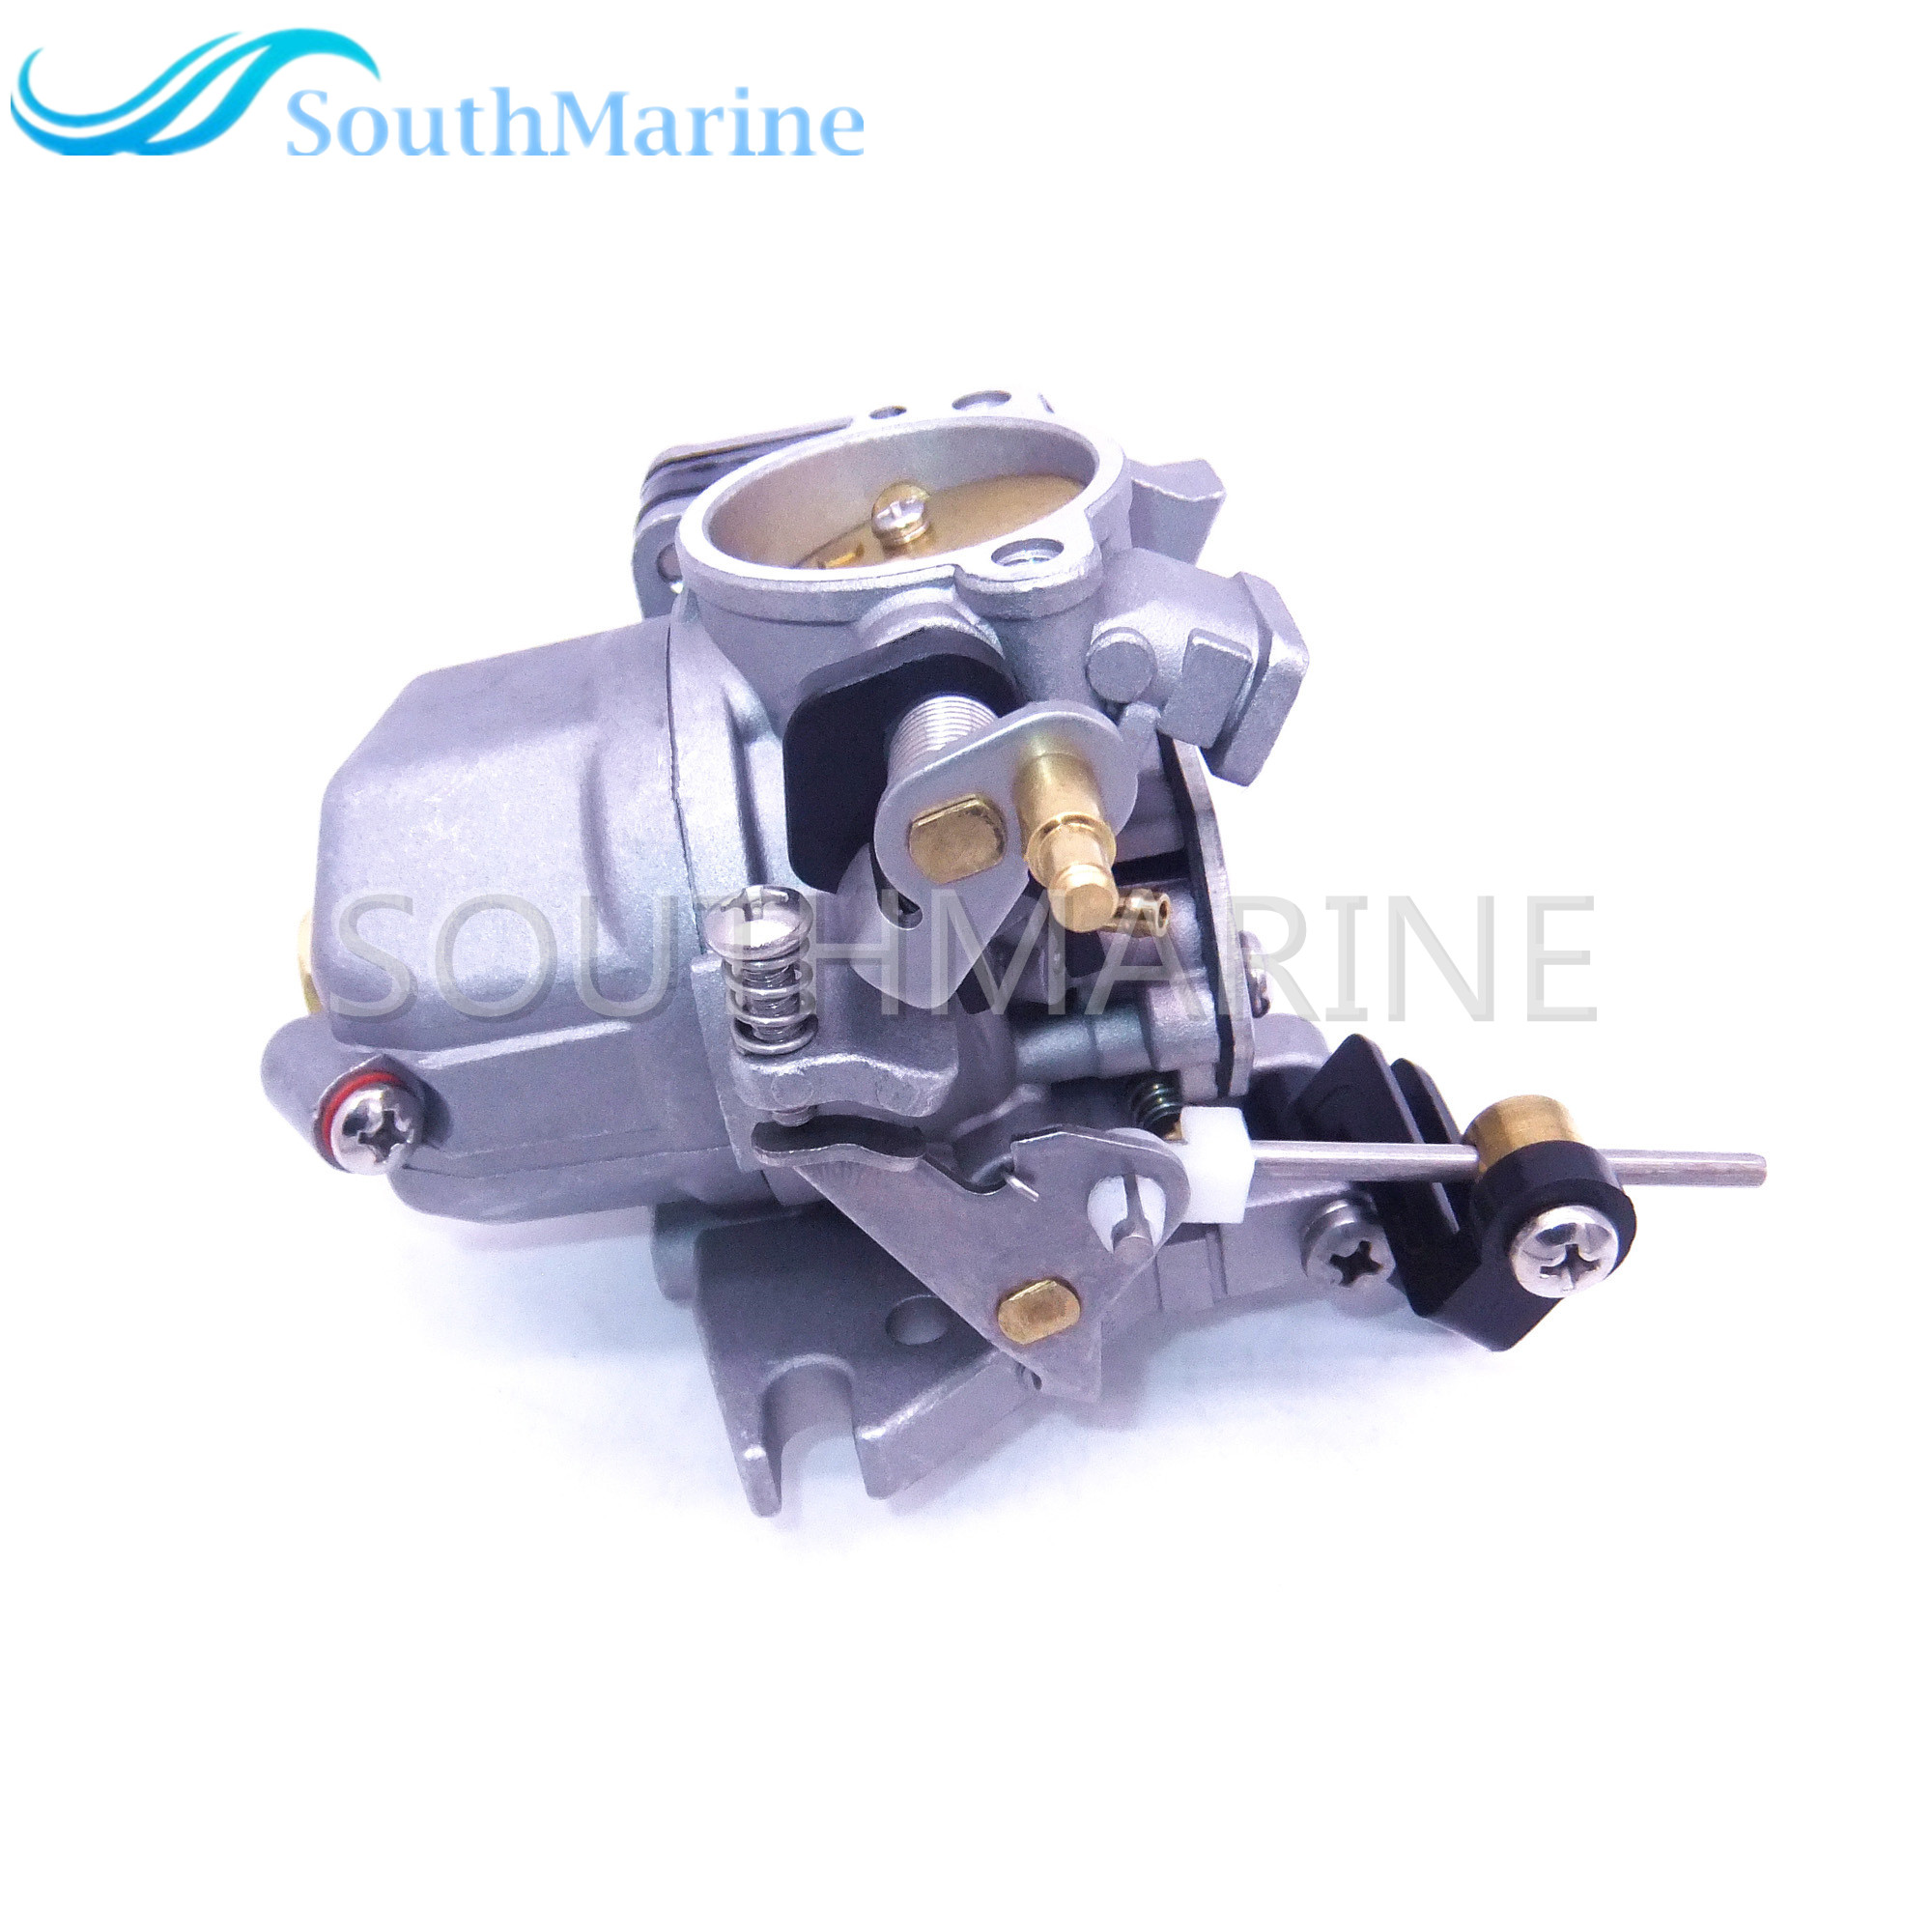 Outboard Motor 684-14301 6E8-14301-05 6E7-14301 Carburetor Carb assy for Yamaha 2-stroke 9.9hp 15hp Boat Engines boat motor t85 04000005 reverse gear for parsun outboard engine 2 stroke t75 t85 t90 free shipping